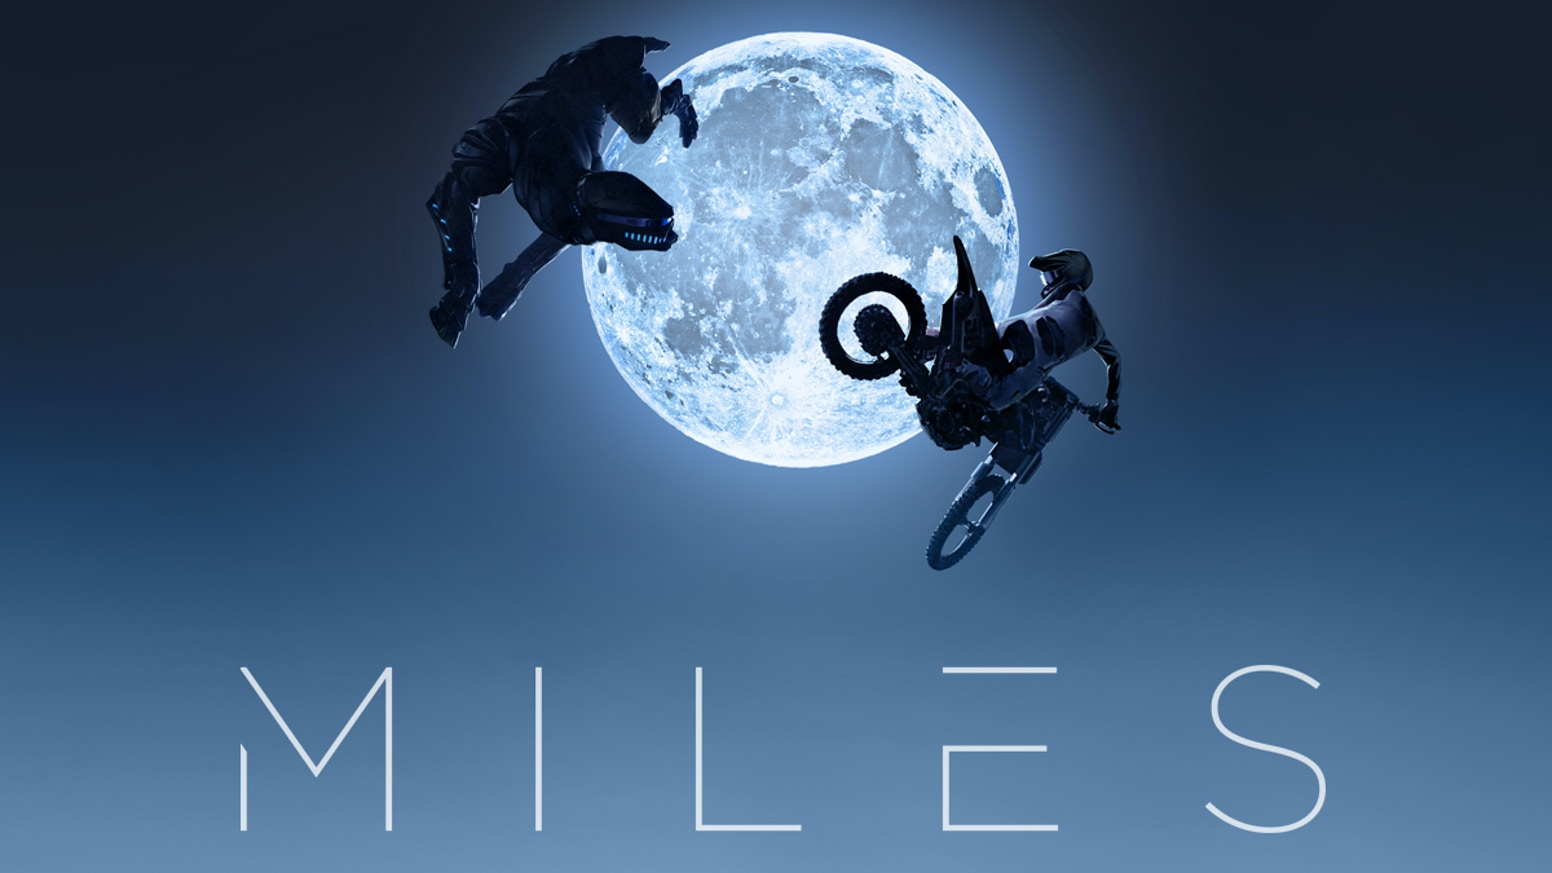 MILES is a movie about blurring the boundaries between humanity and technology, set in the off-roading world of Central California.